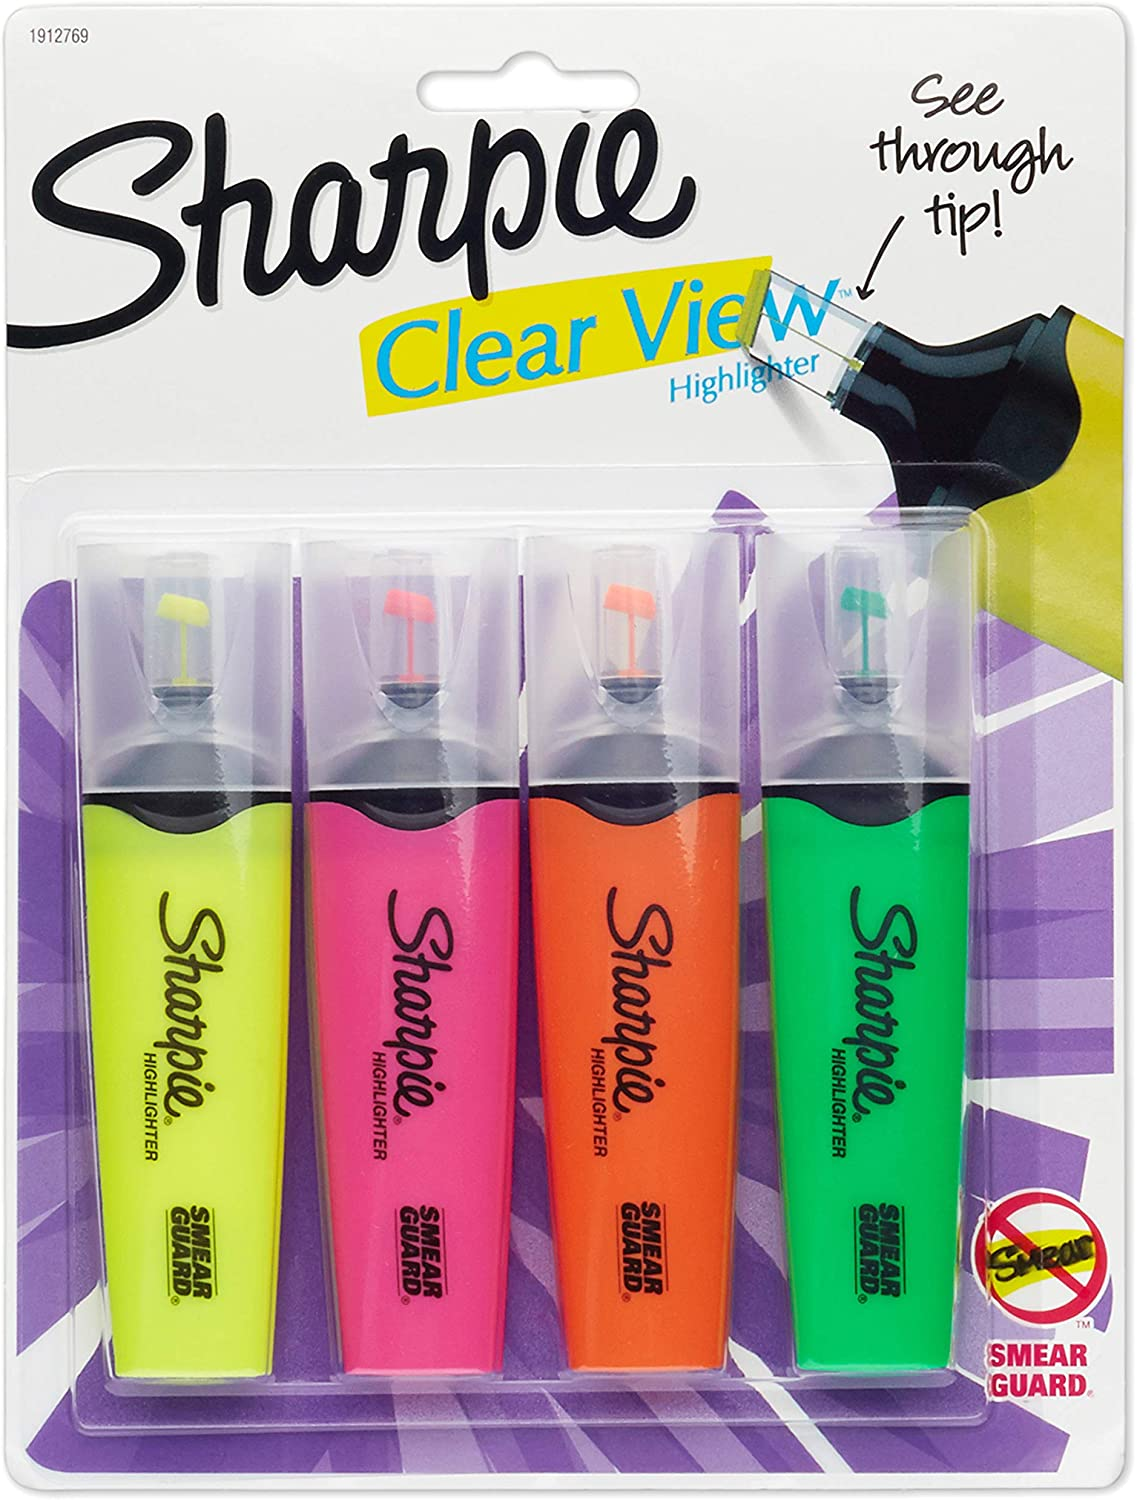 Sharpie 1912769 Clear View Highlighters, Chisel Tip, Assorted Colors, 4-Count : Office Products